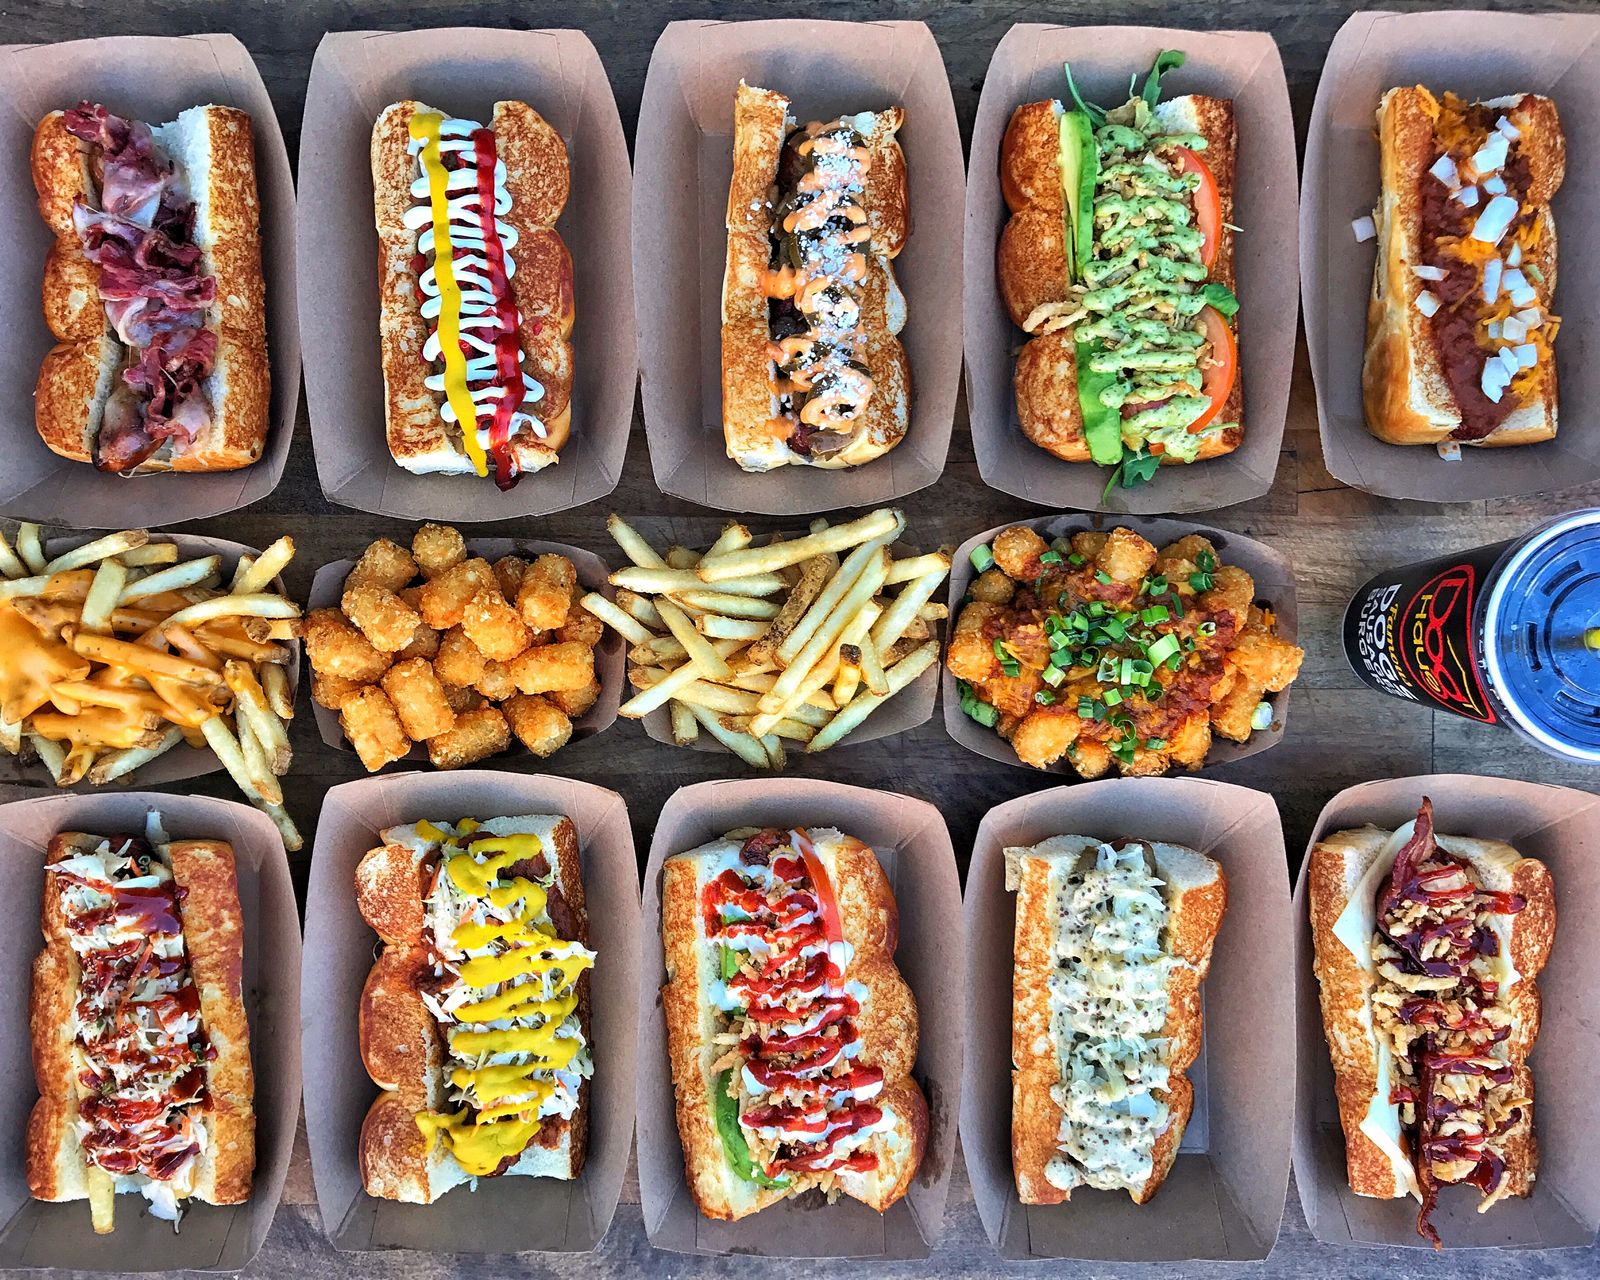 Dog Haus Celebrates 10 Years of Evolving into a Critically-Acclaimed Brand